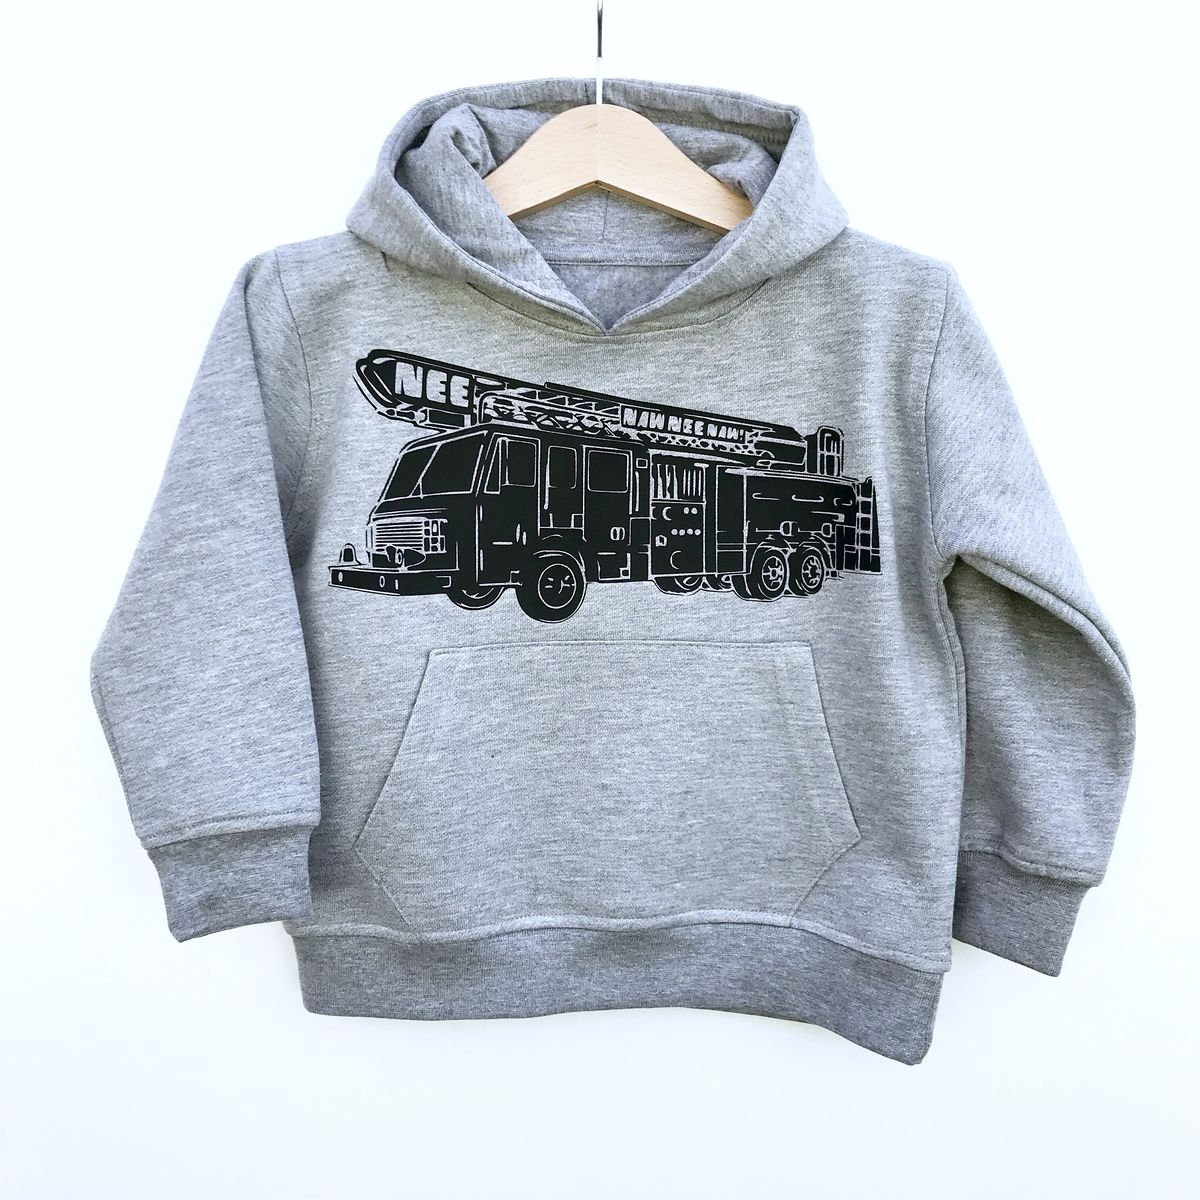 NeeNaw! Fire Truck Kids Hoodie (Various Sizes) - product images  of